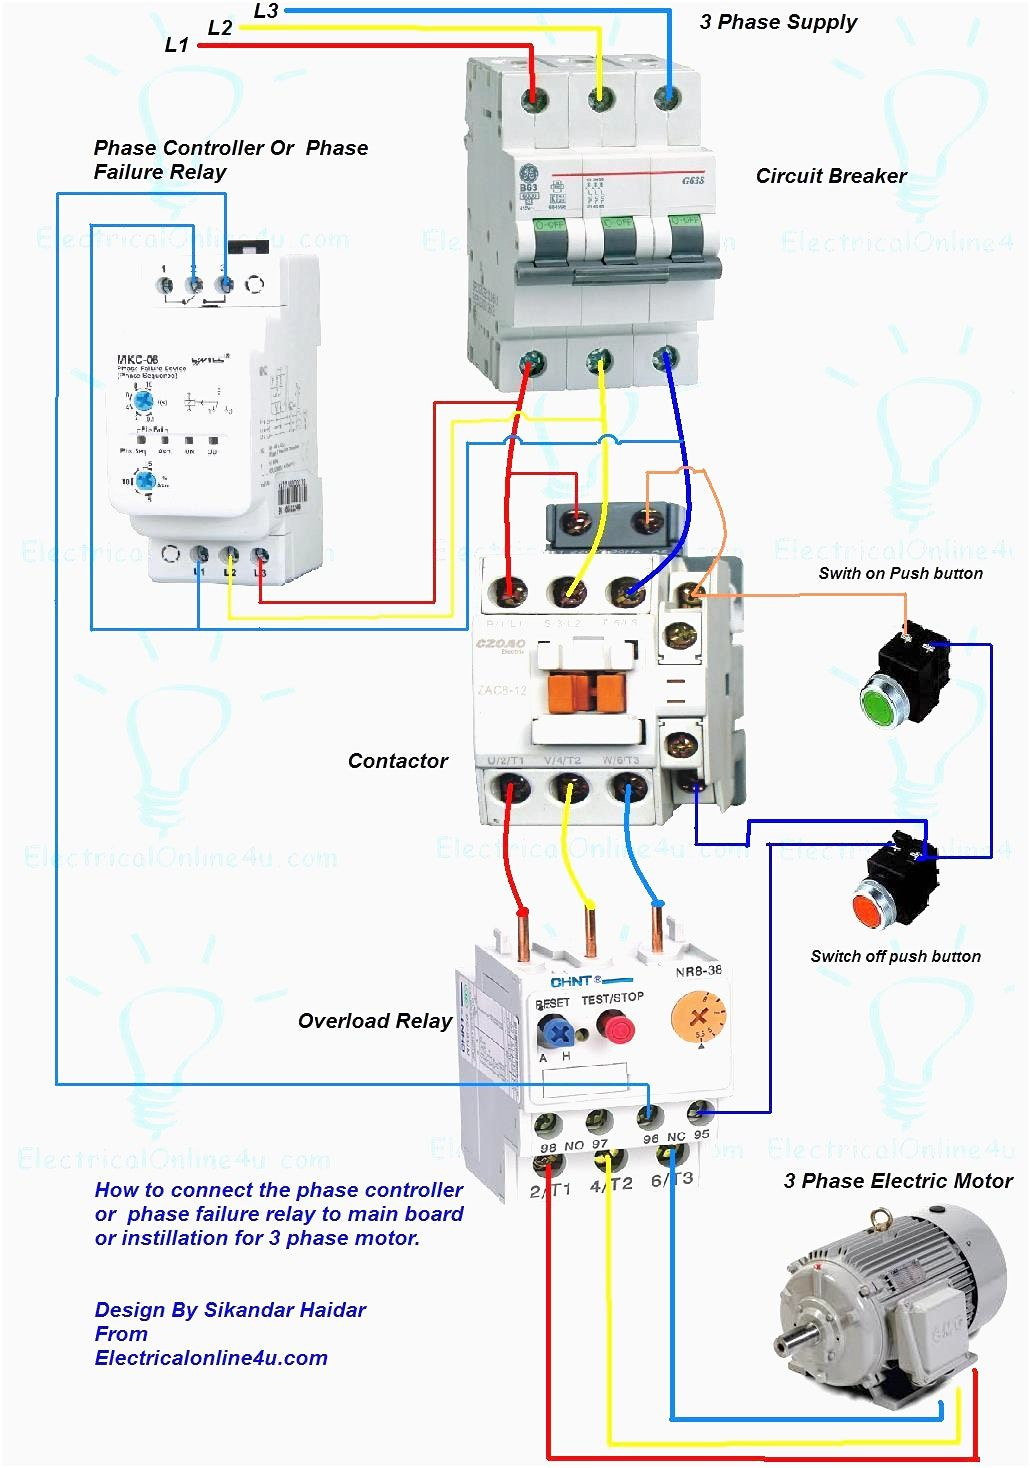 wiring diagram for a 3 phase motor starter modern design of wiring wiring diagram for motor starter 3 phase controller failure relay rh com wire 3 phase motor starter wire 3 phase motor starter